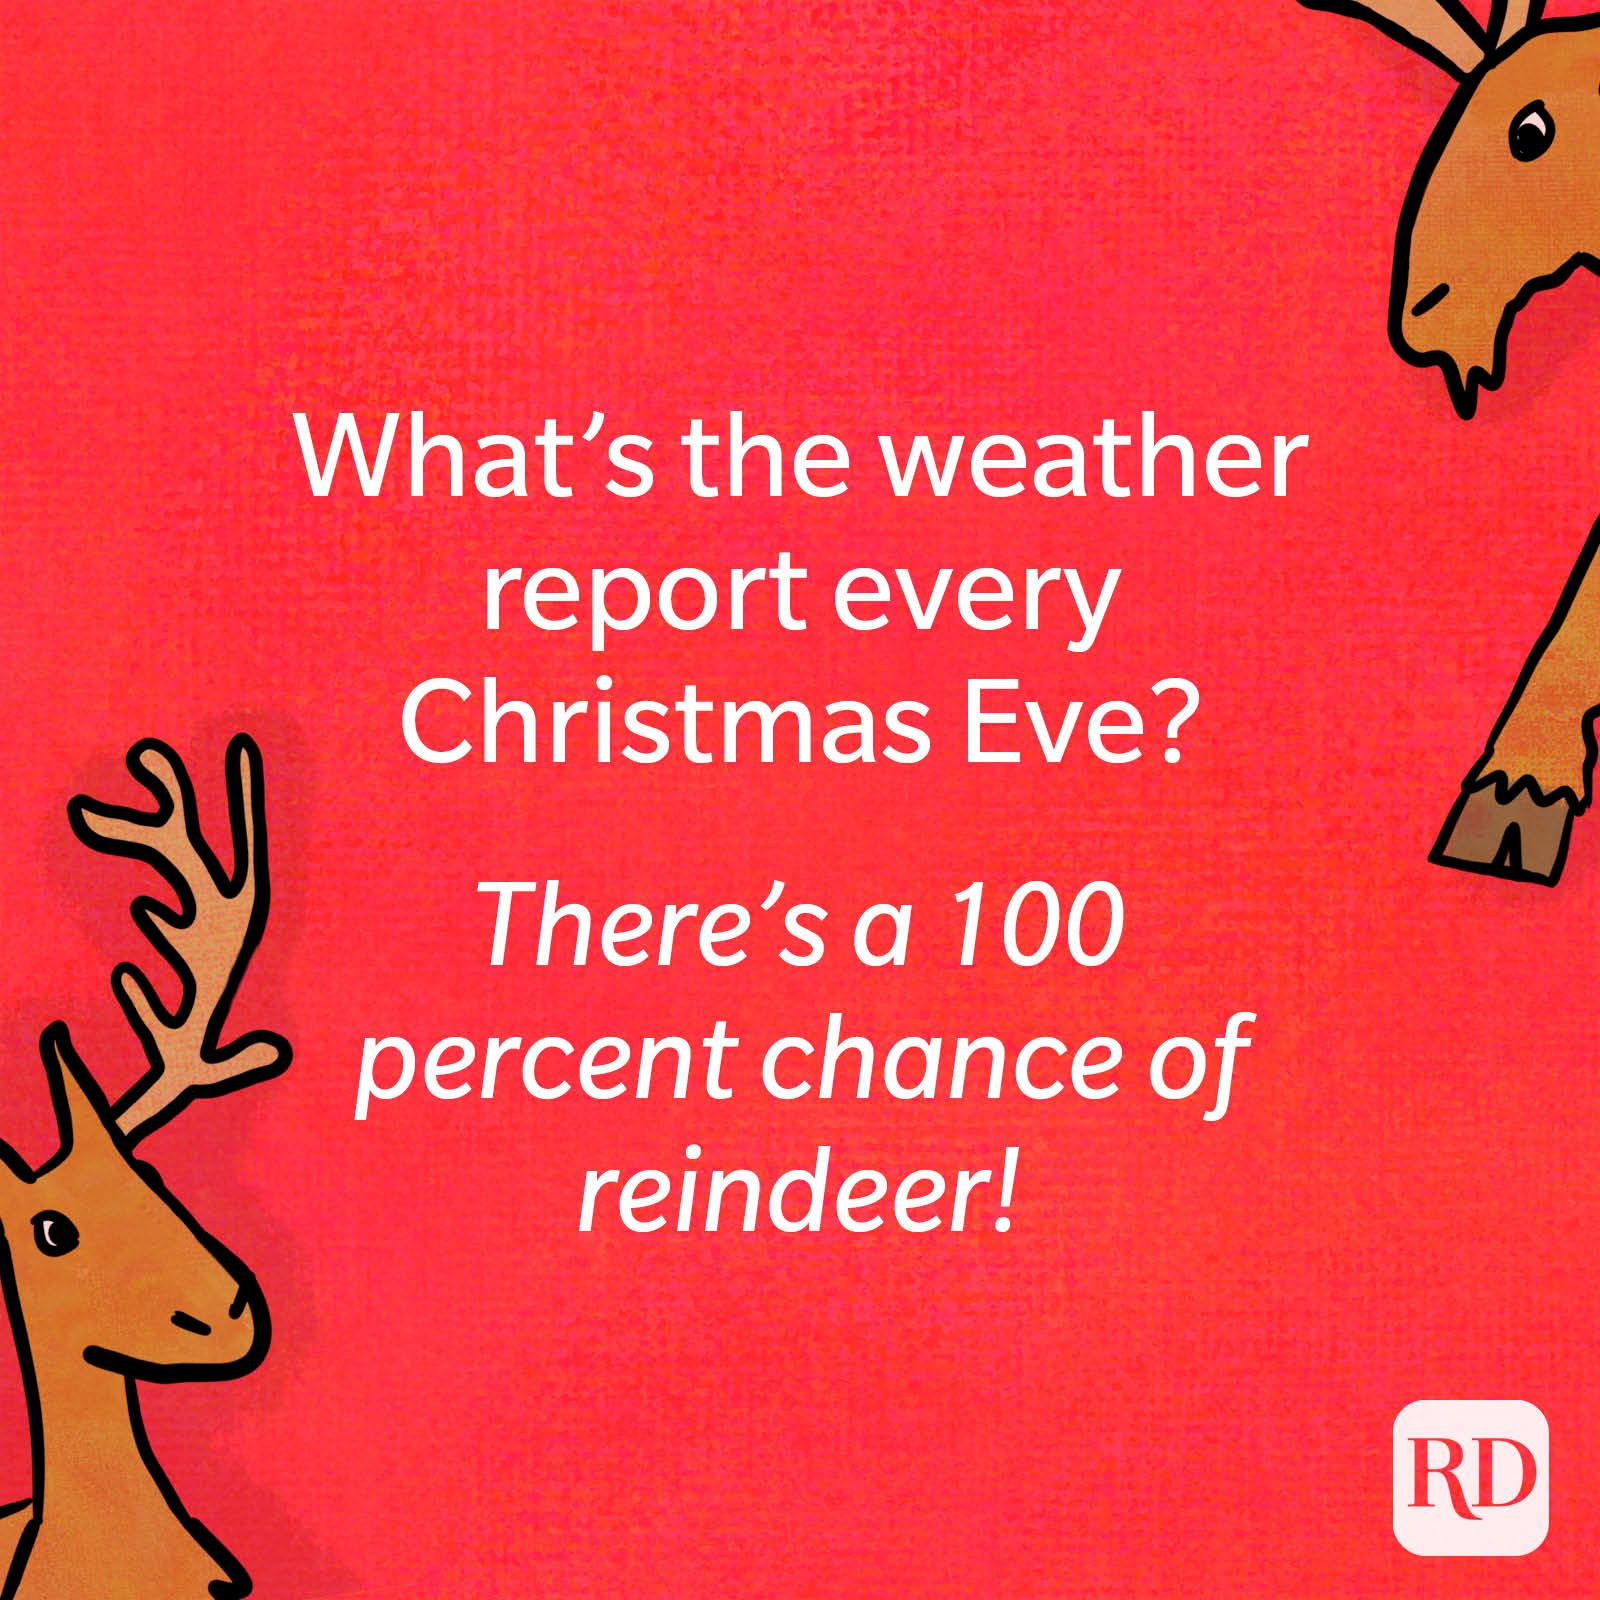 What's the weather report every Christmas Eve?